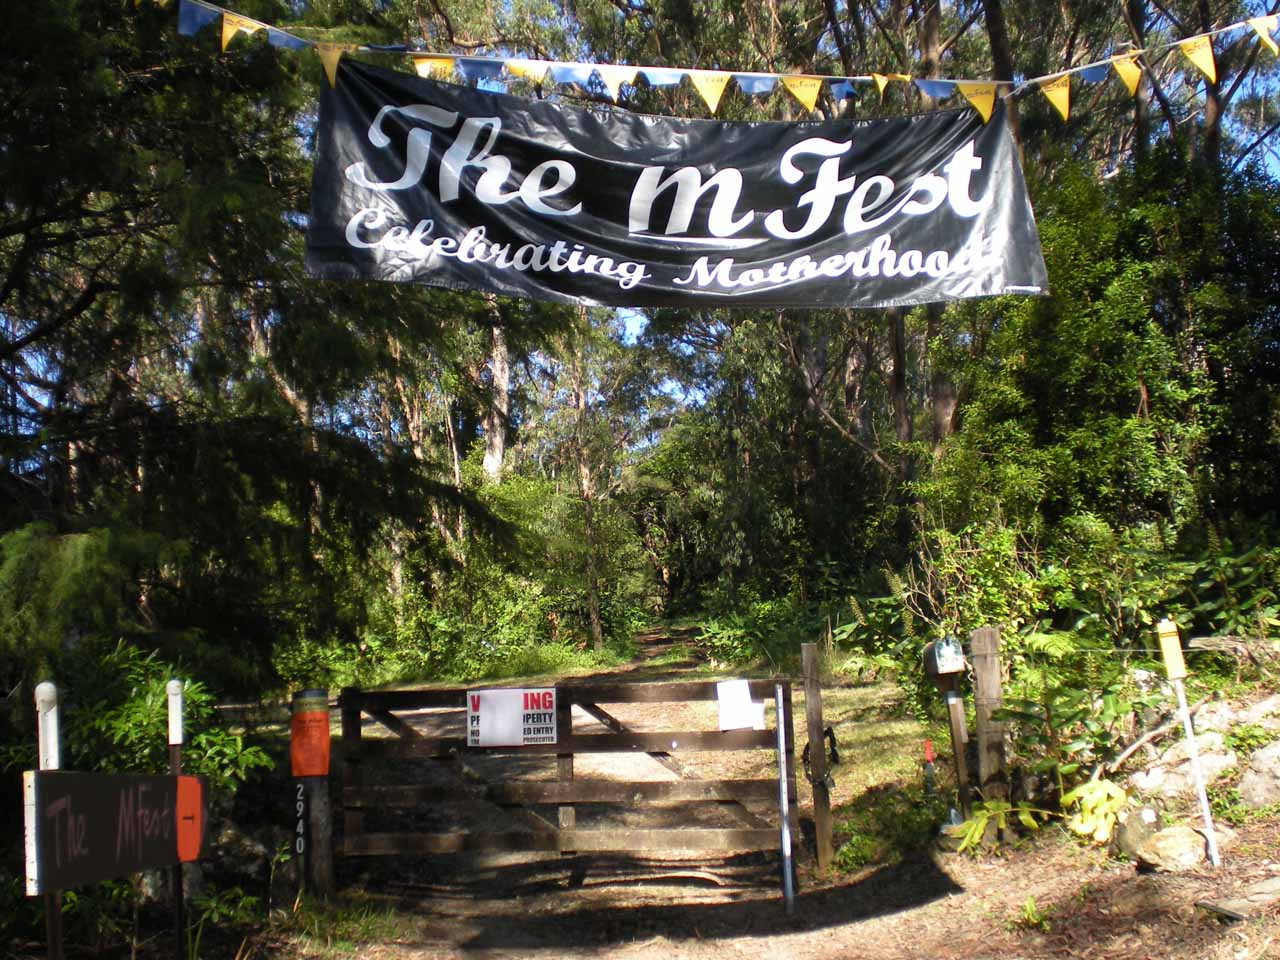 The M Fest - Celebrating Motherhood sign